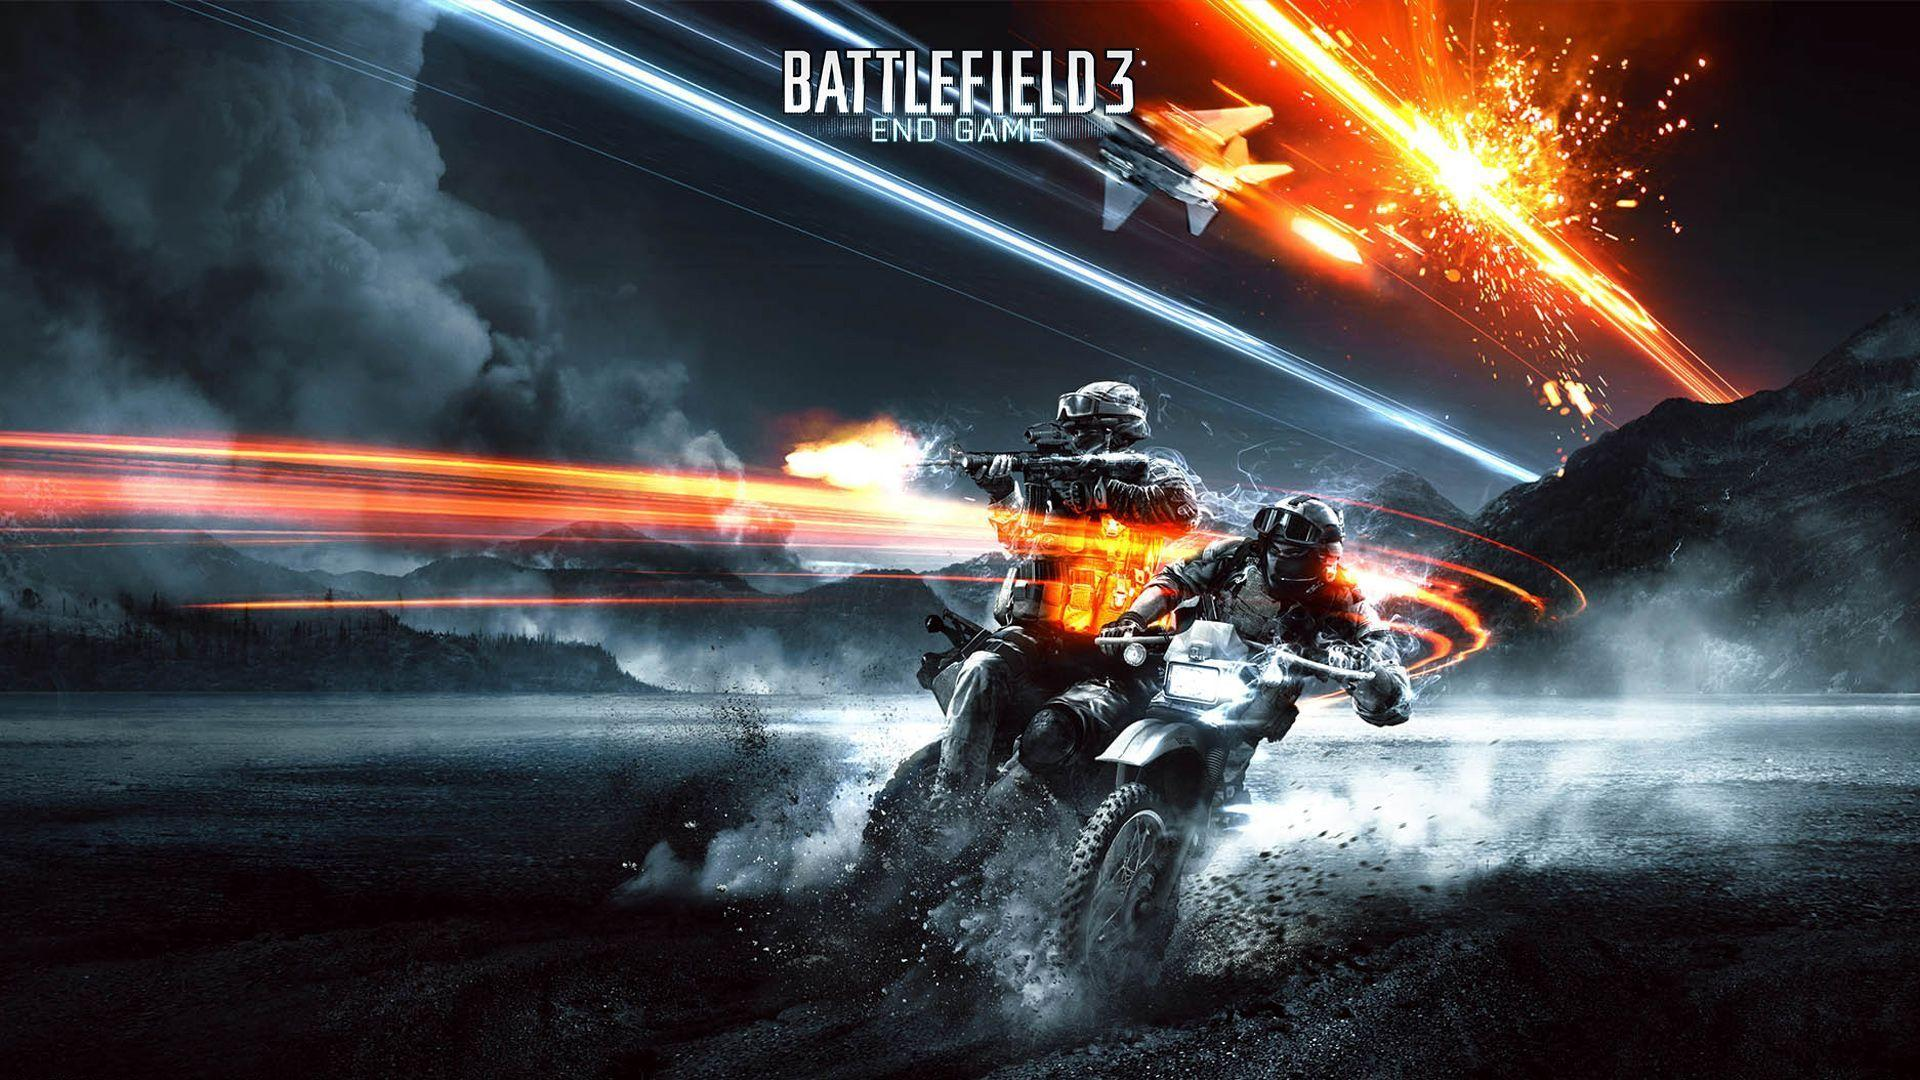 Battlefield 3 End Game Wallpapers | HD Wallpapers